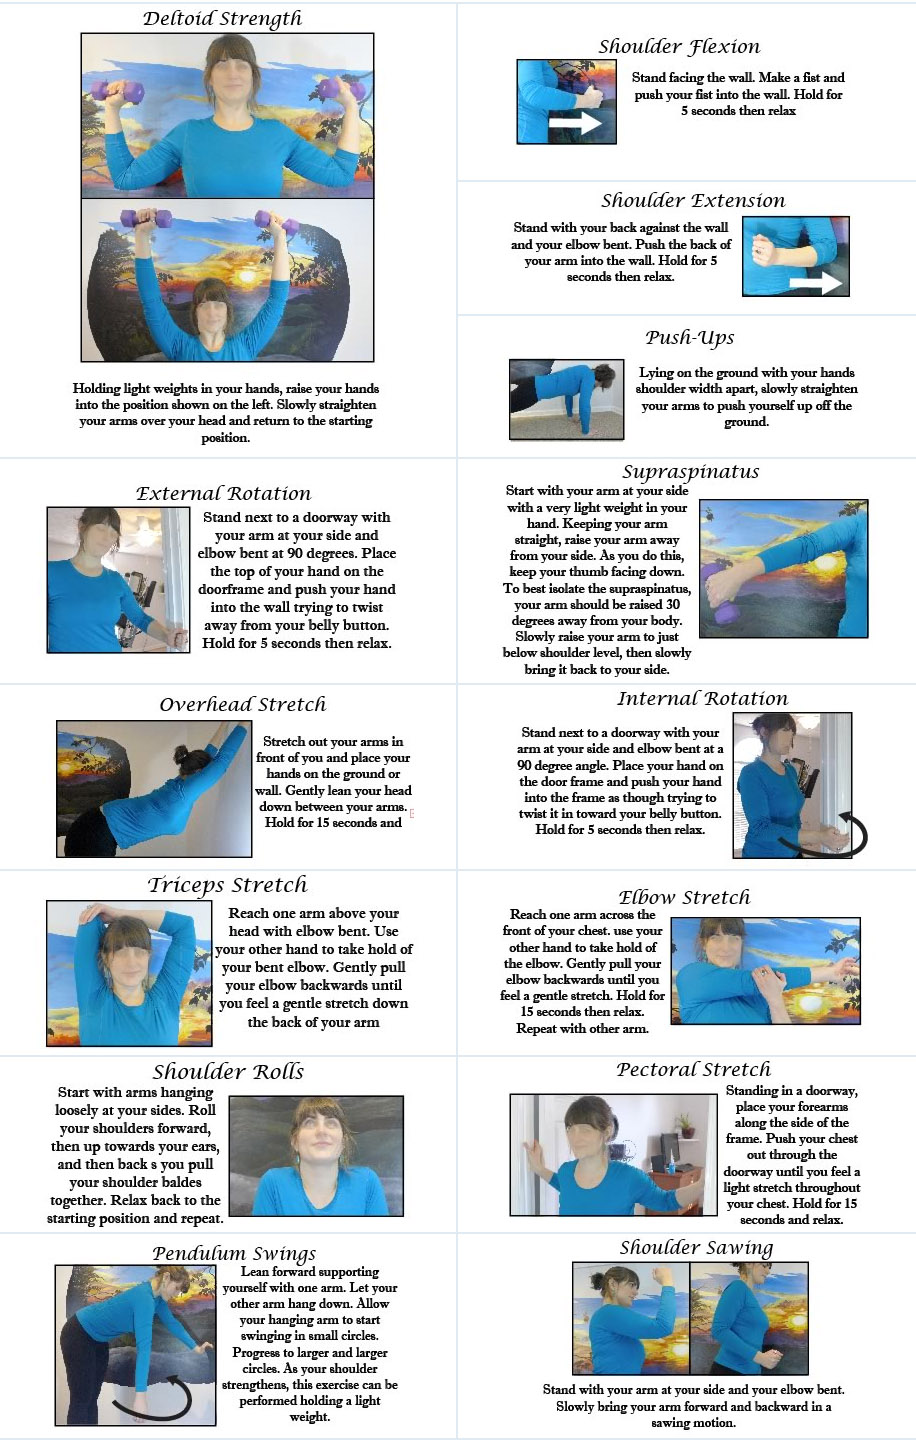 Shoulders Patient Stretch and Exercise Guide 2